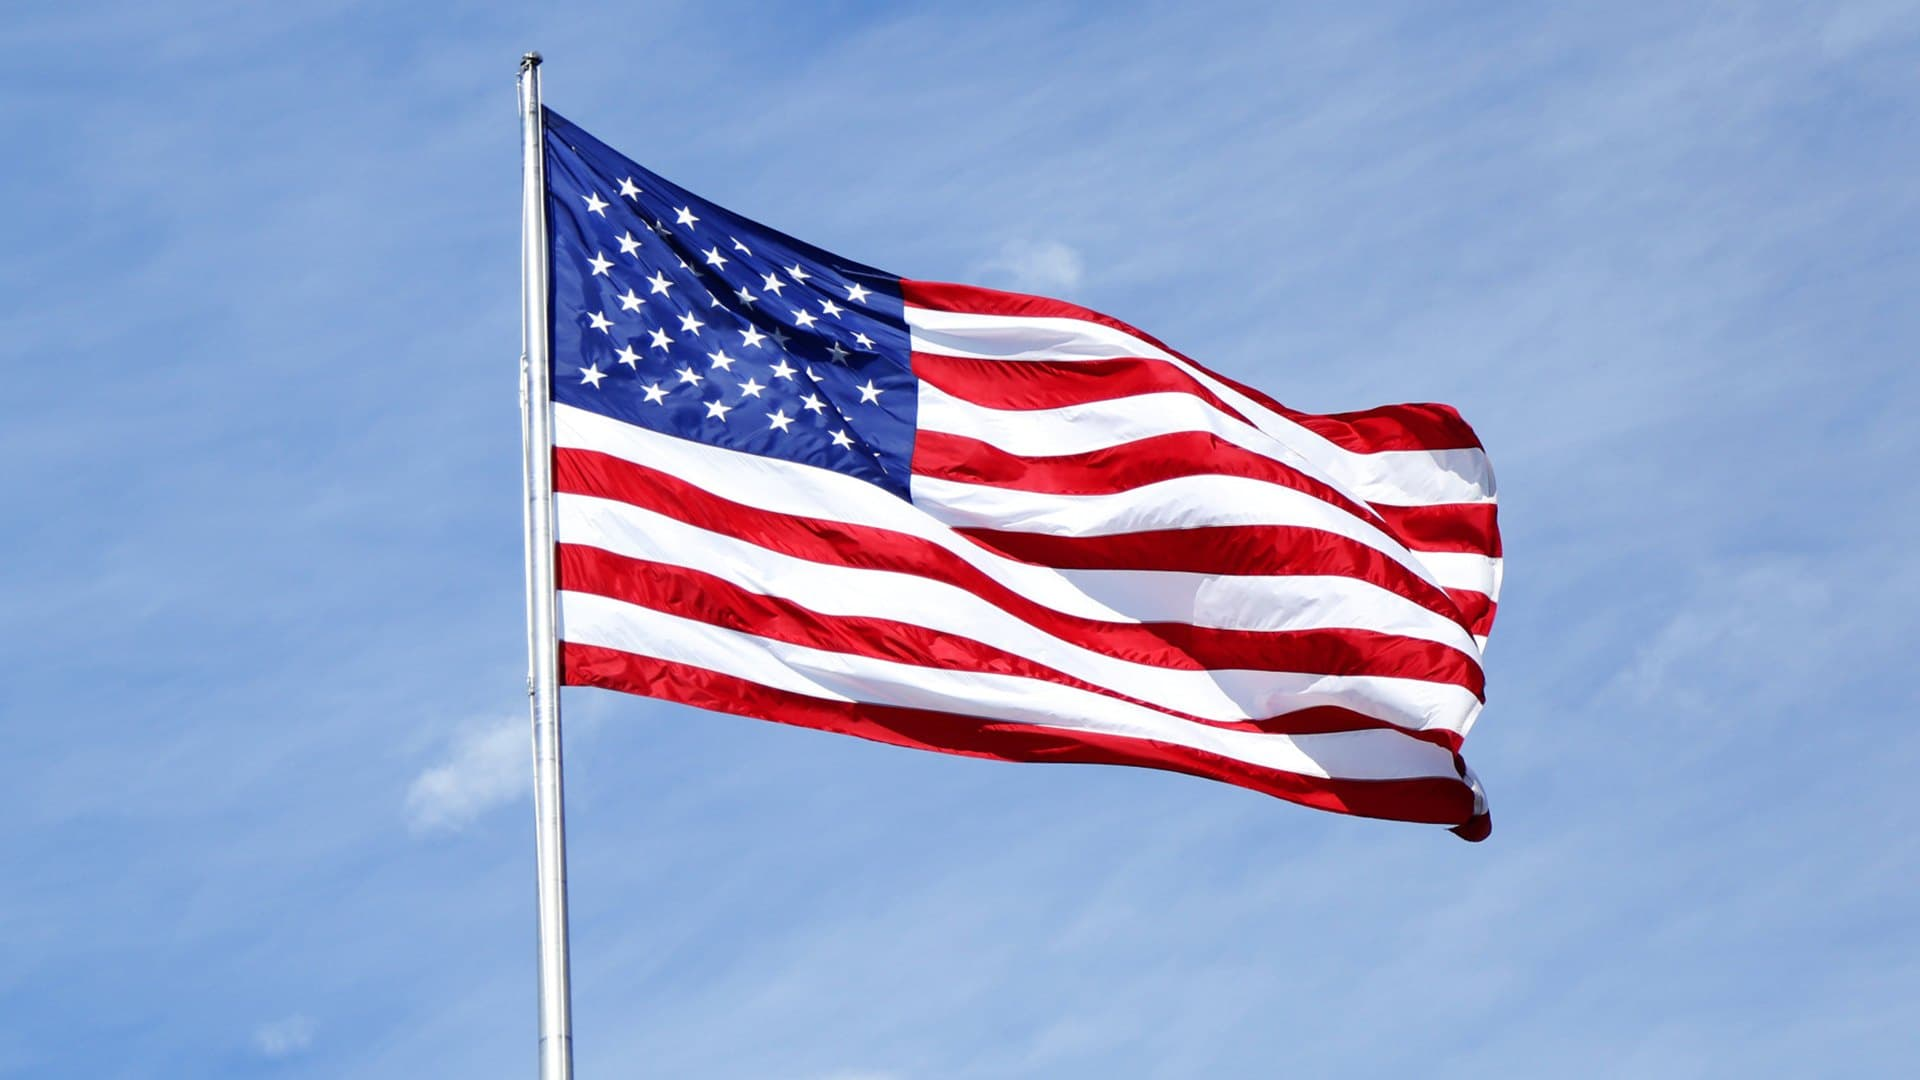 Larger Than 6' x 10' US Outdoor Flags